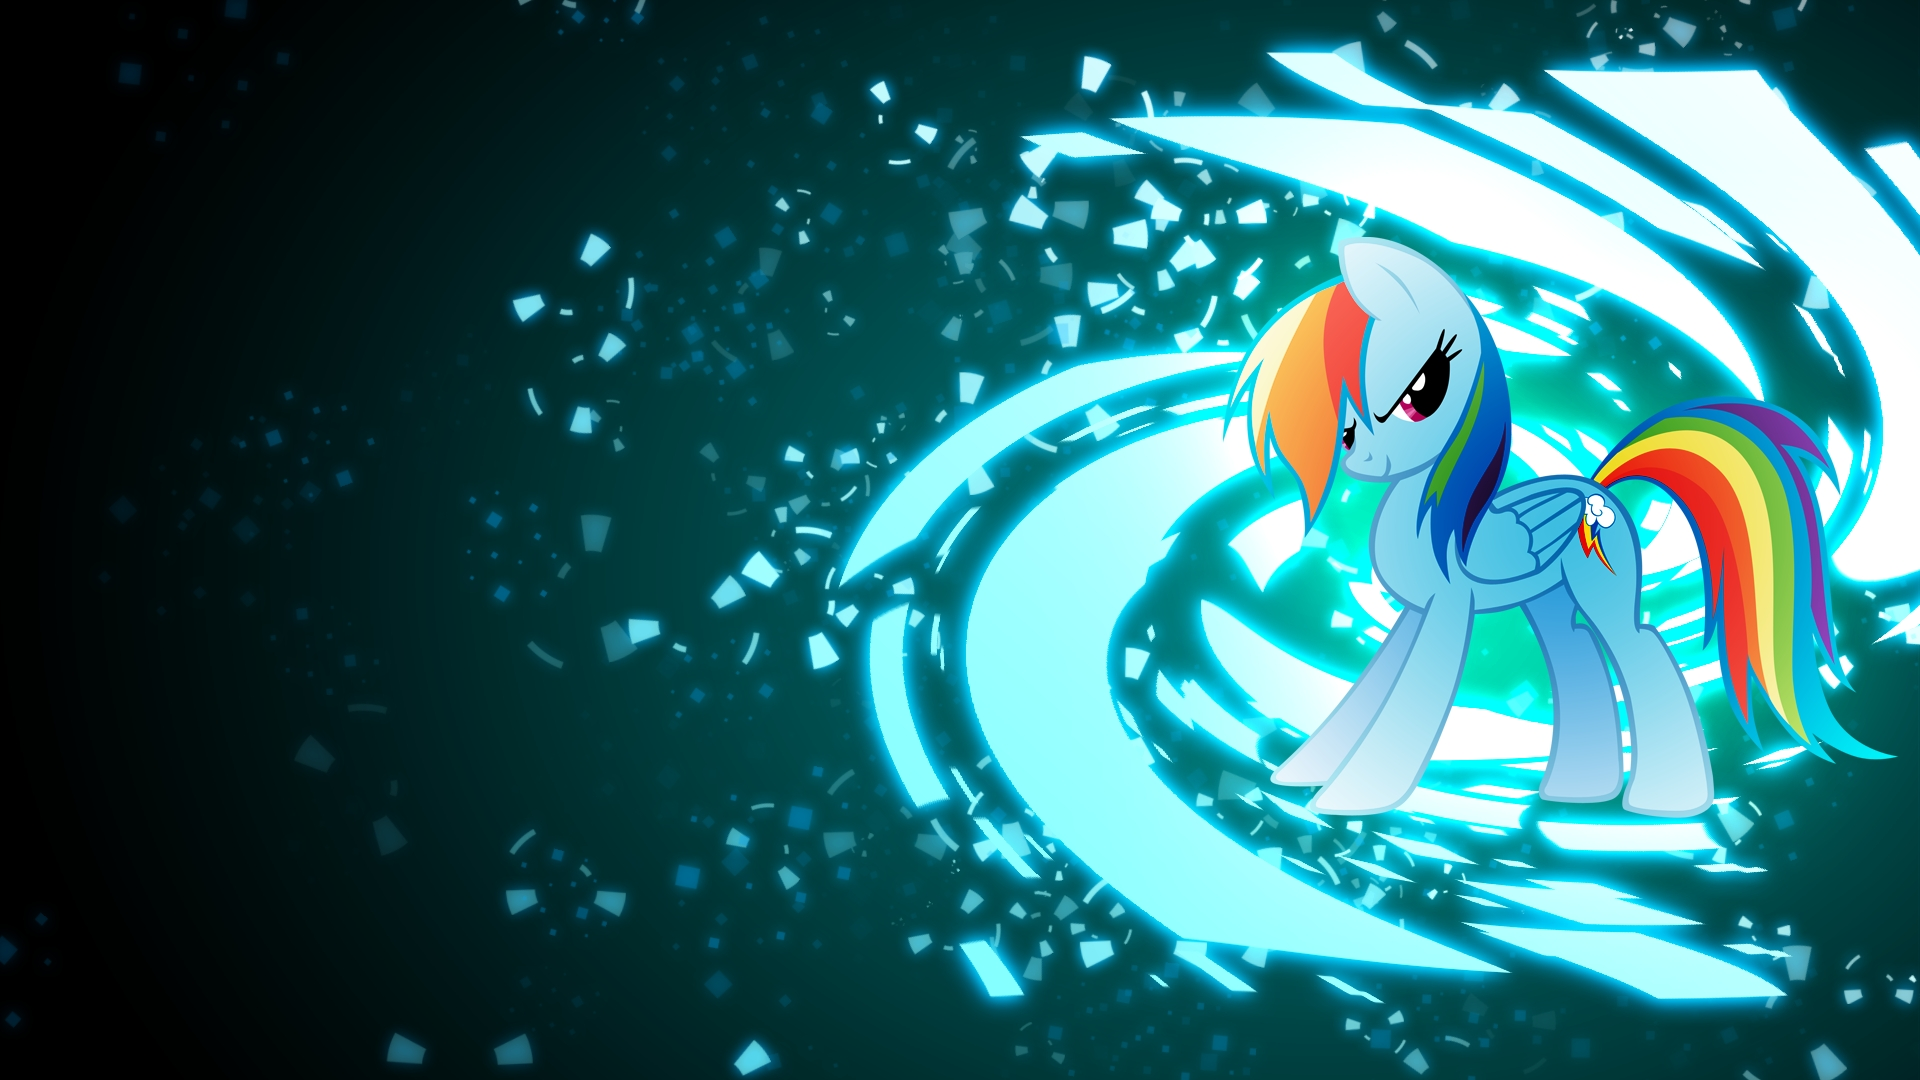 10 Best Mlp Rainbow Dash Wallpaper FULL HD 1920×1080 For PC Background